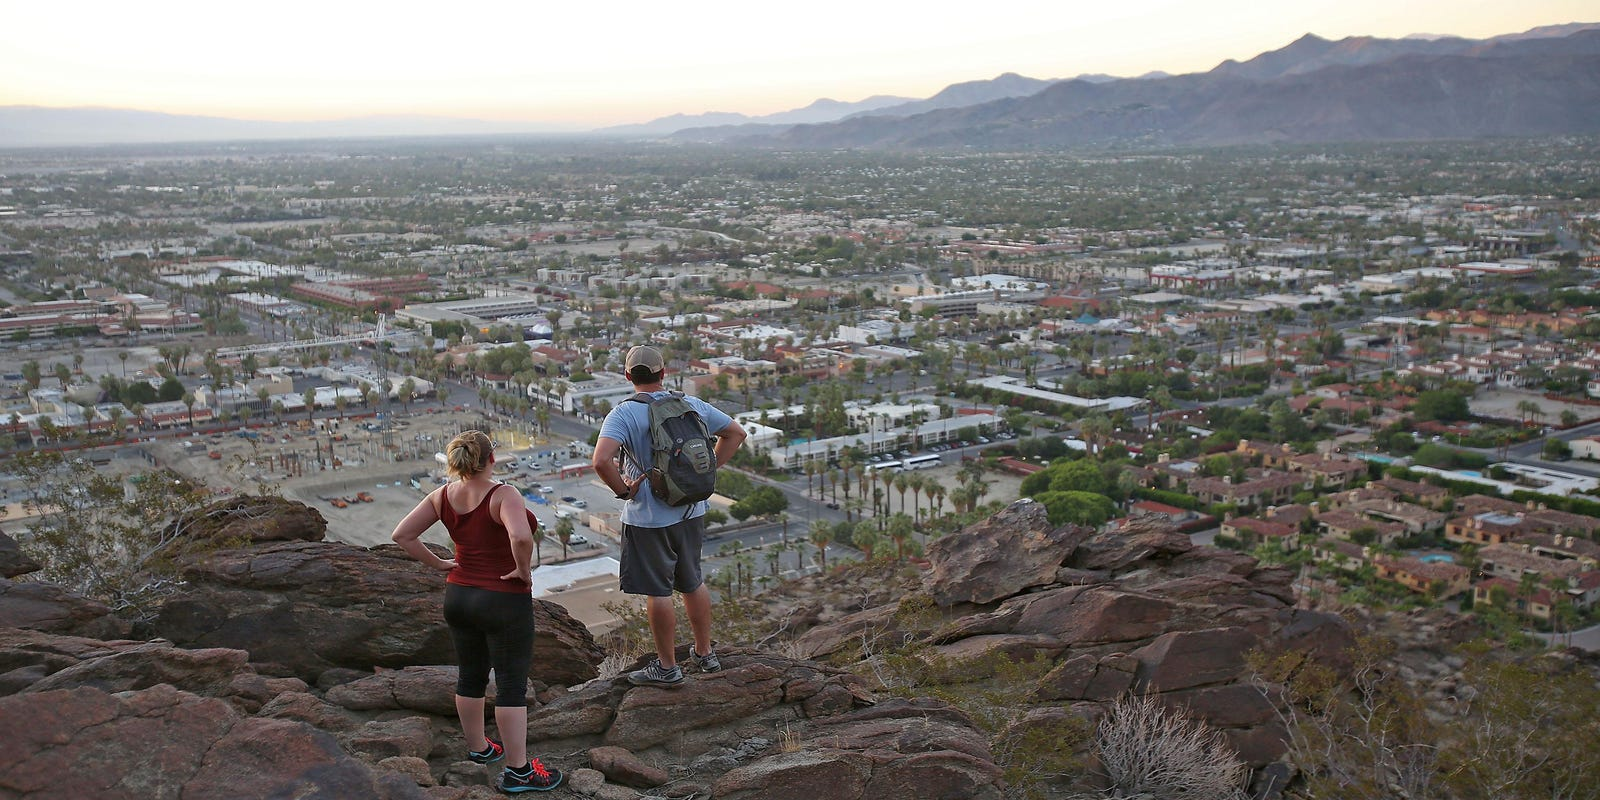 Uncalculated tragedy: Death on Palm Springs' Skyline Trail